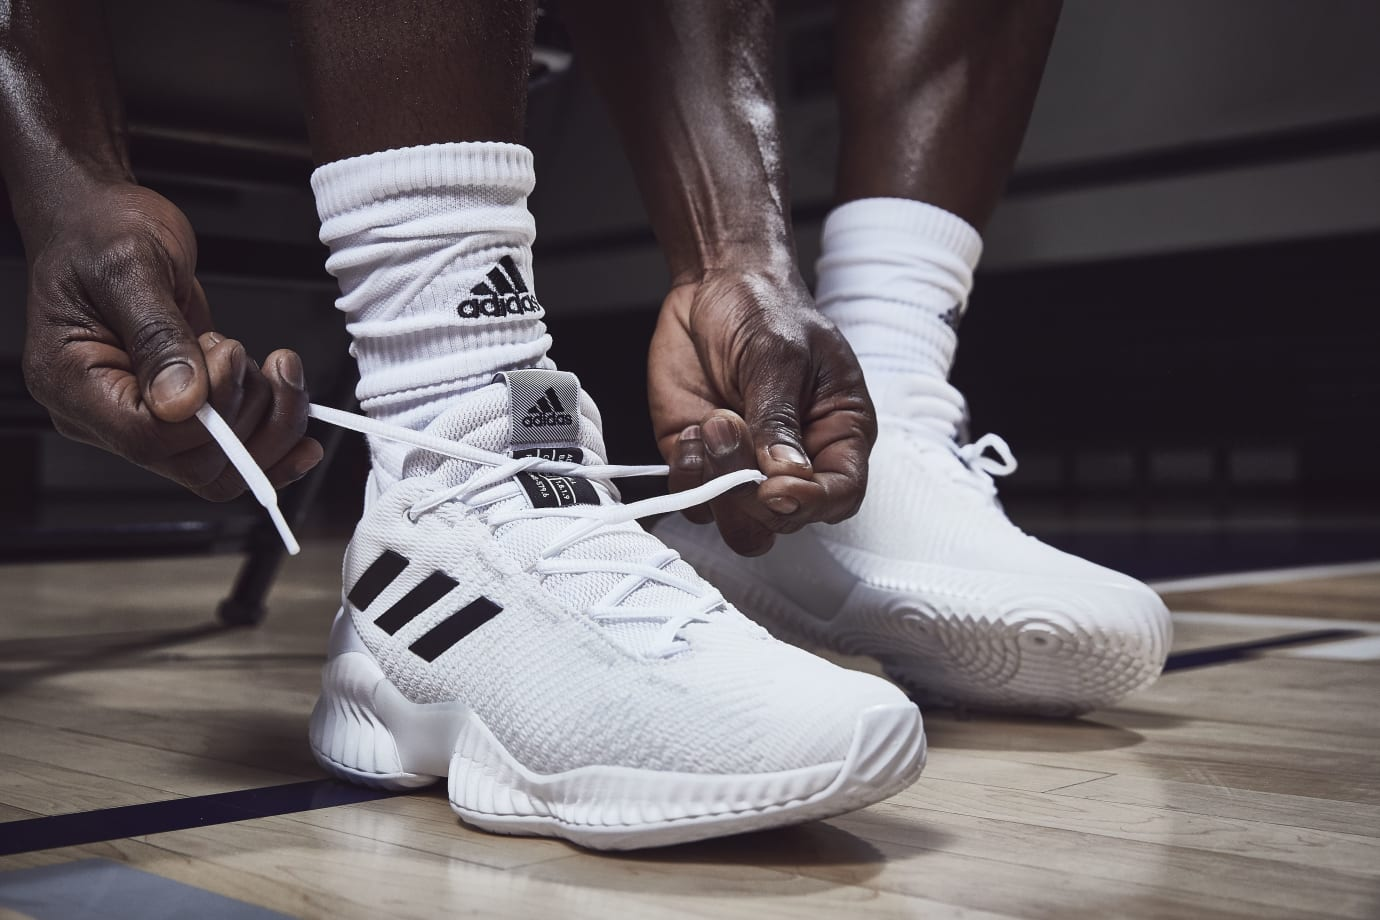 Adidas Pro Bounce Low 'White/Black' 1